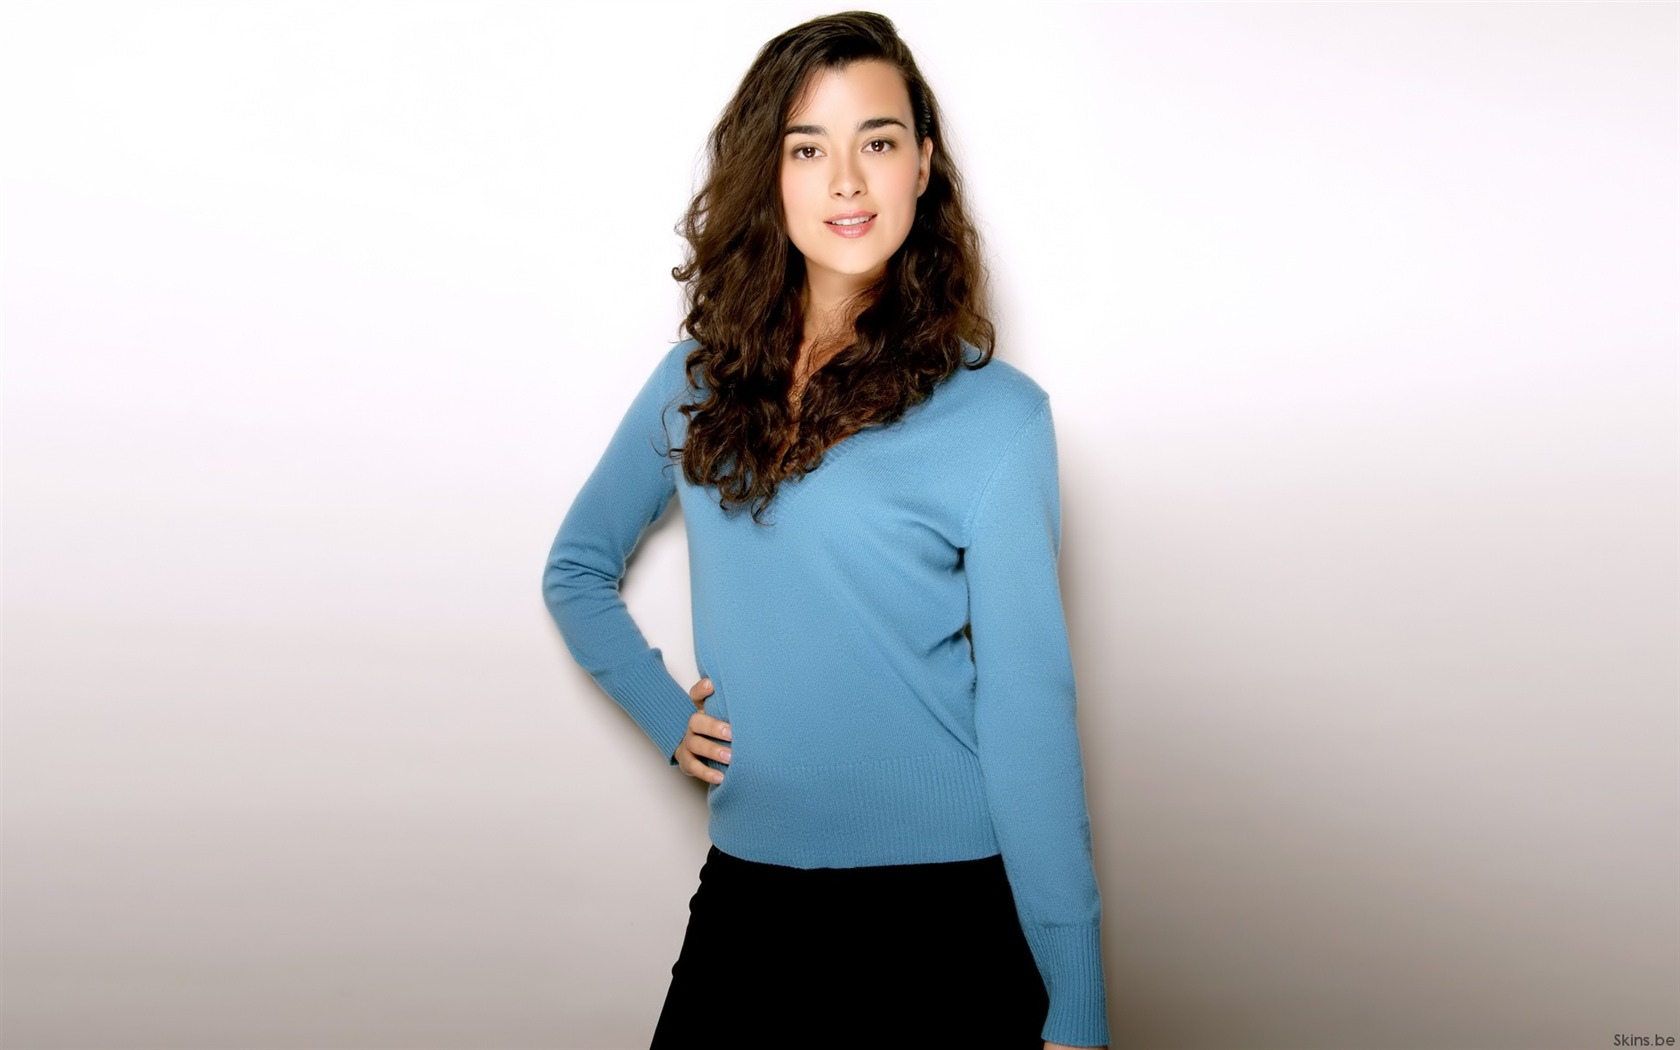 Cote de Pablo #016 - 1680x1050 Wallpapers Pictures Photos Images